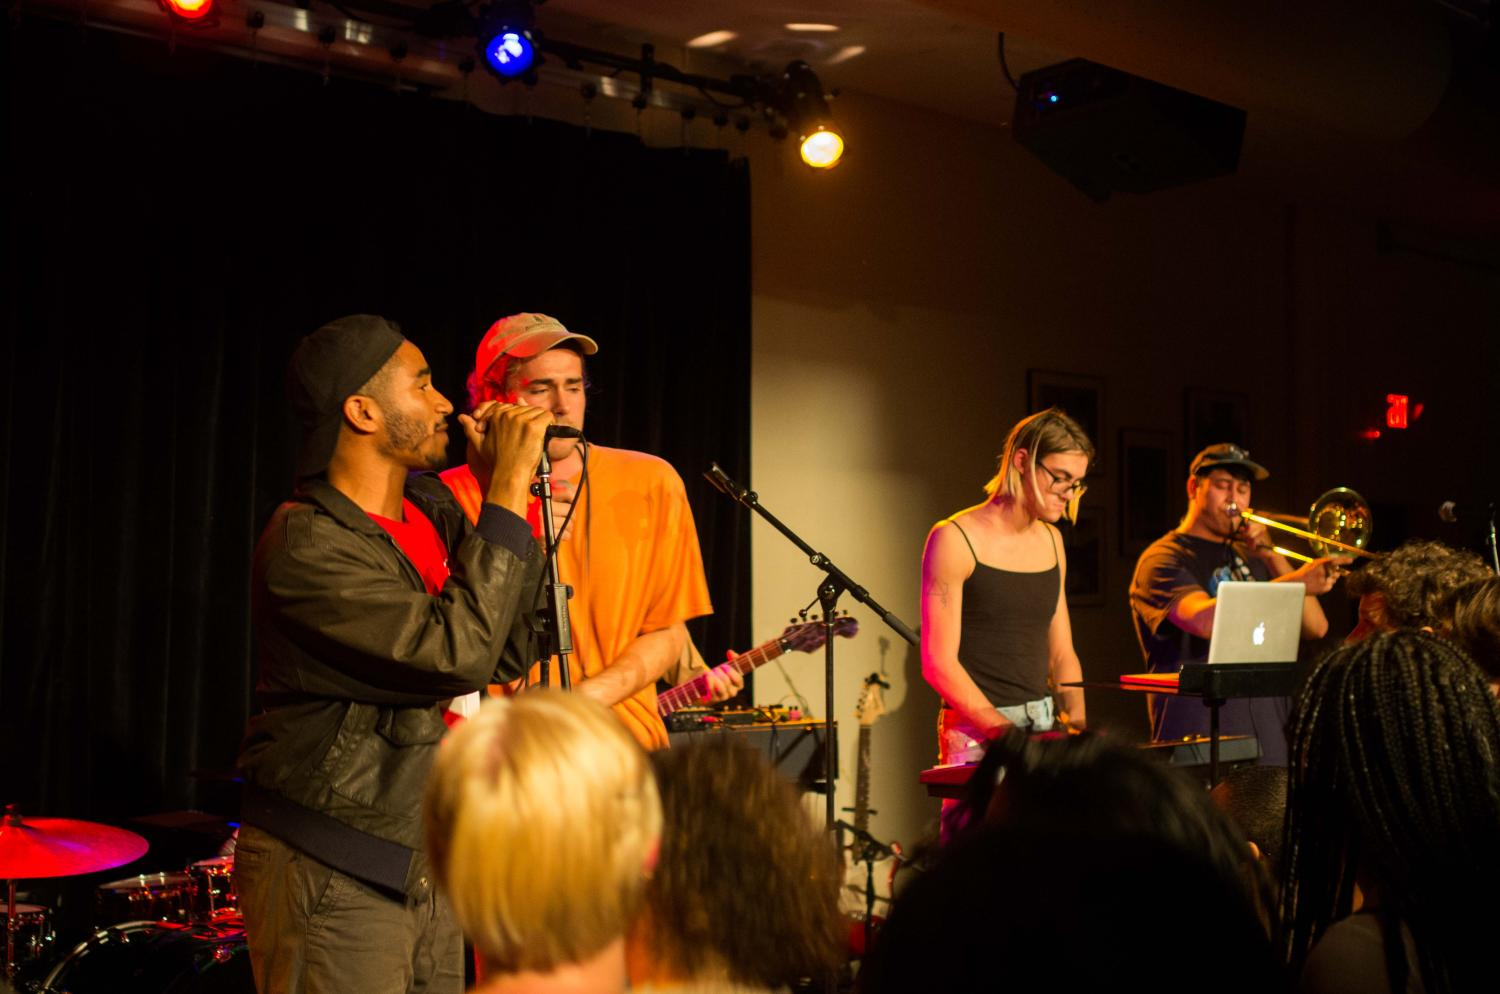 Student band Bémbe opens for Xenia Rubinos, who played an energetic, powerful show at the Cat in the Cream Saturday night.